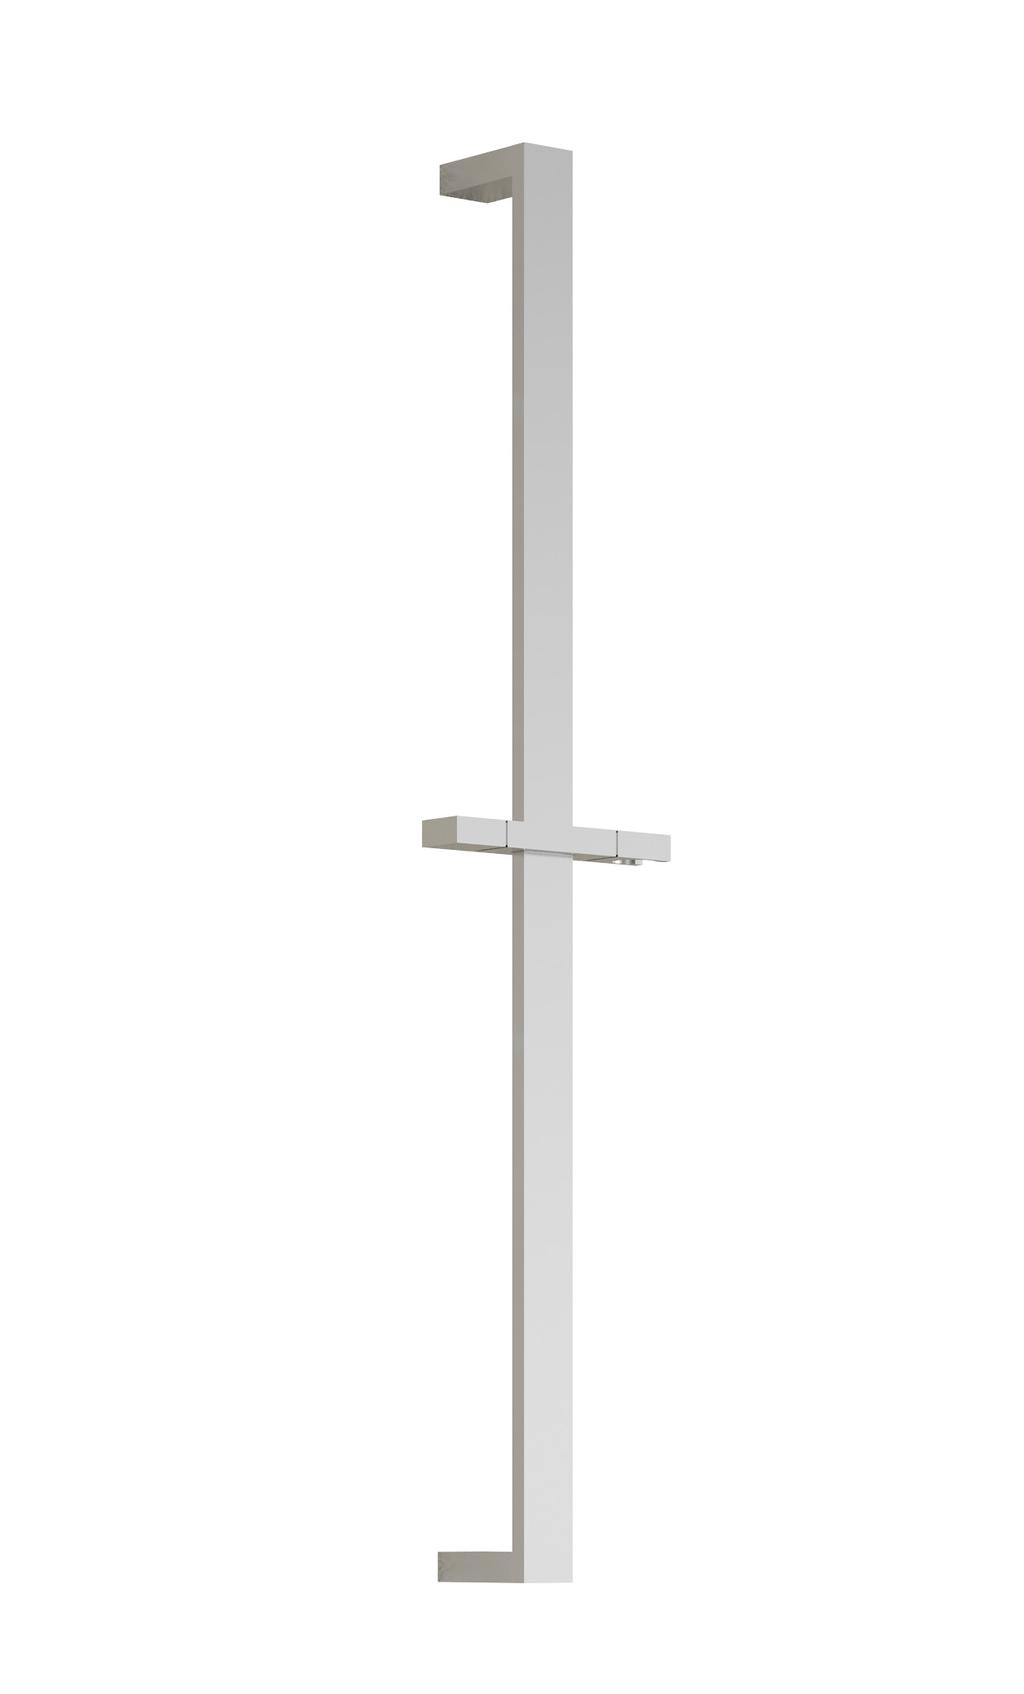 102858 Wallbar for Handshower SPECIFICATIONS Features Total height of 762mm (30 ) Locking system Chrome : 102858-110 Packaging Dimensions: 832mm x 152mm x 89mm (32 3/4 x 6 x 3 1/2 ) Volume: 0.